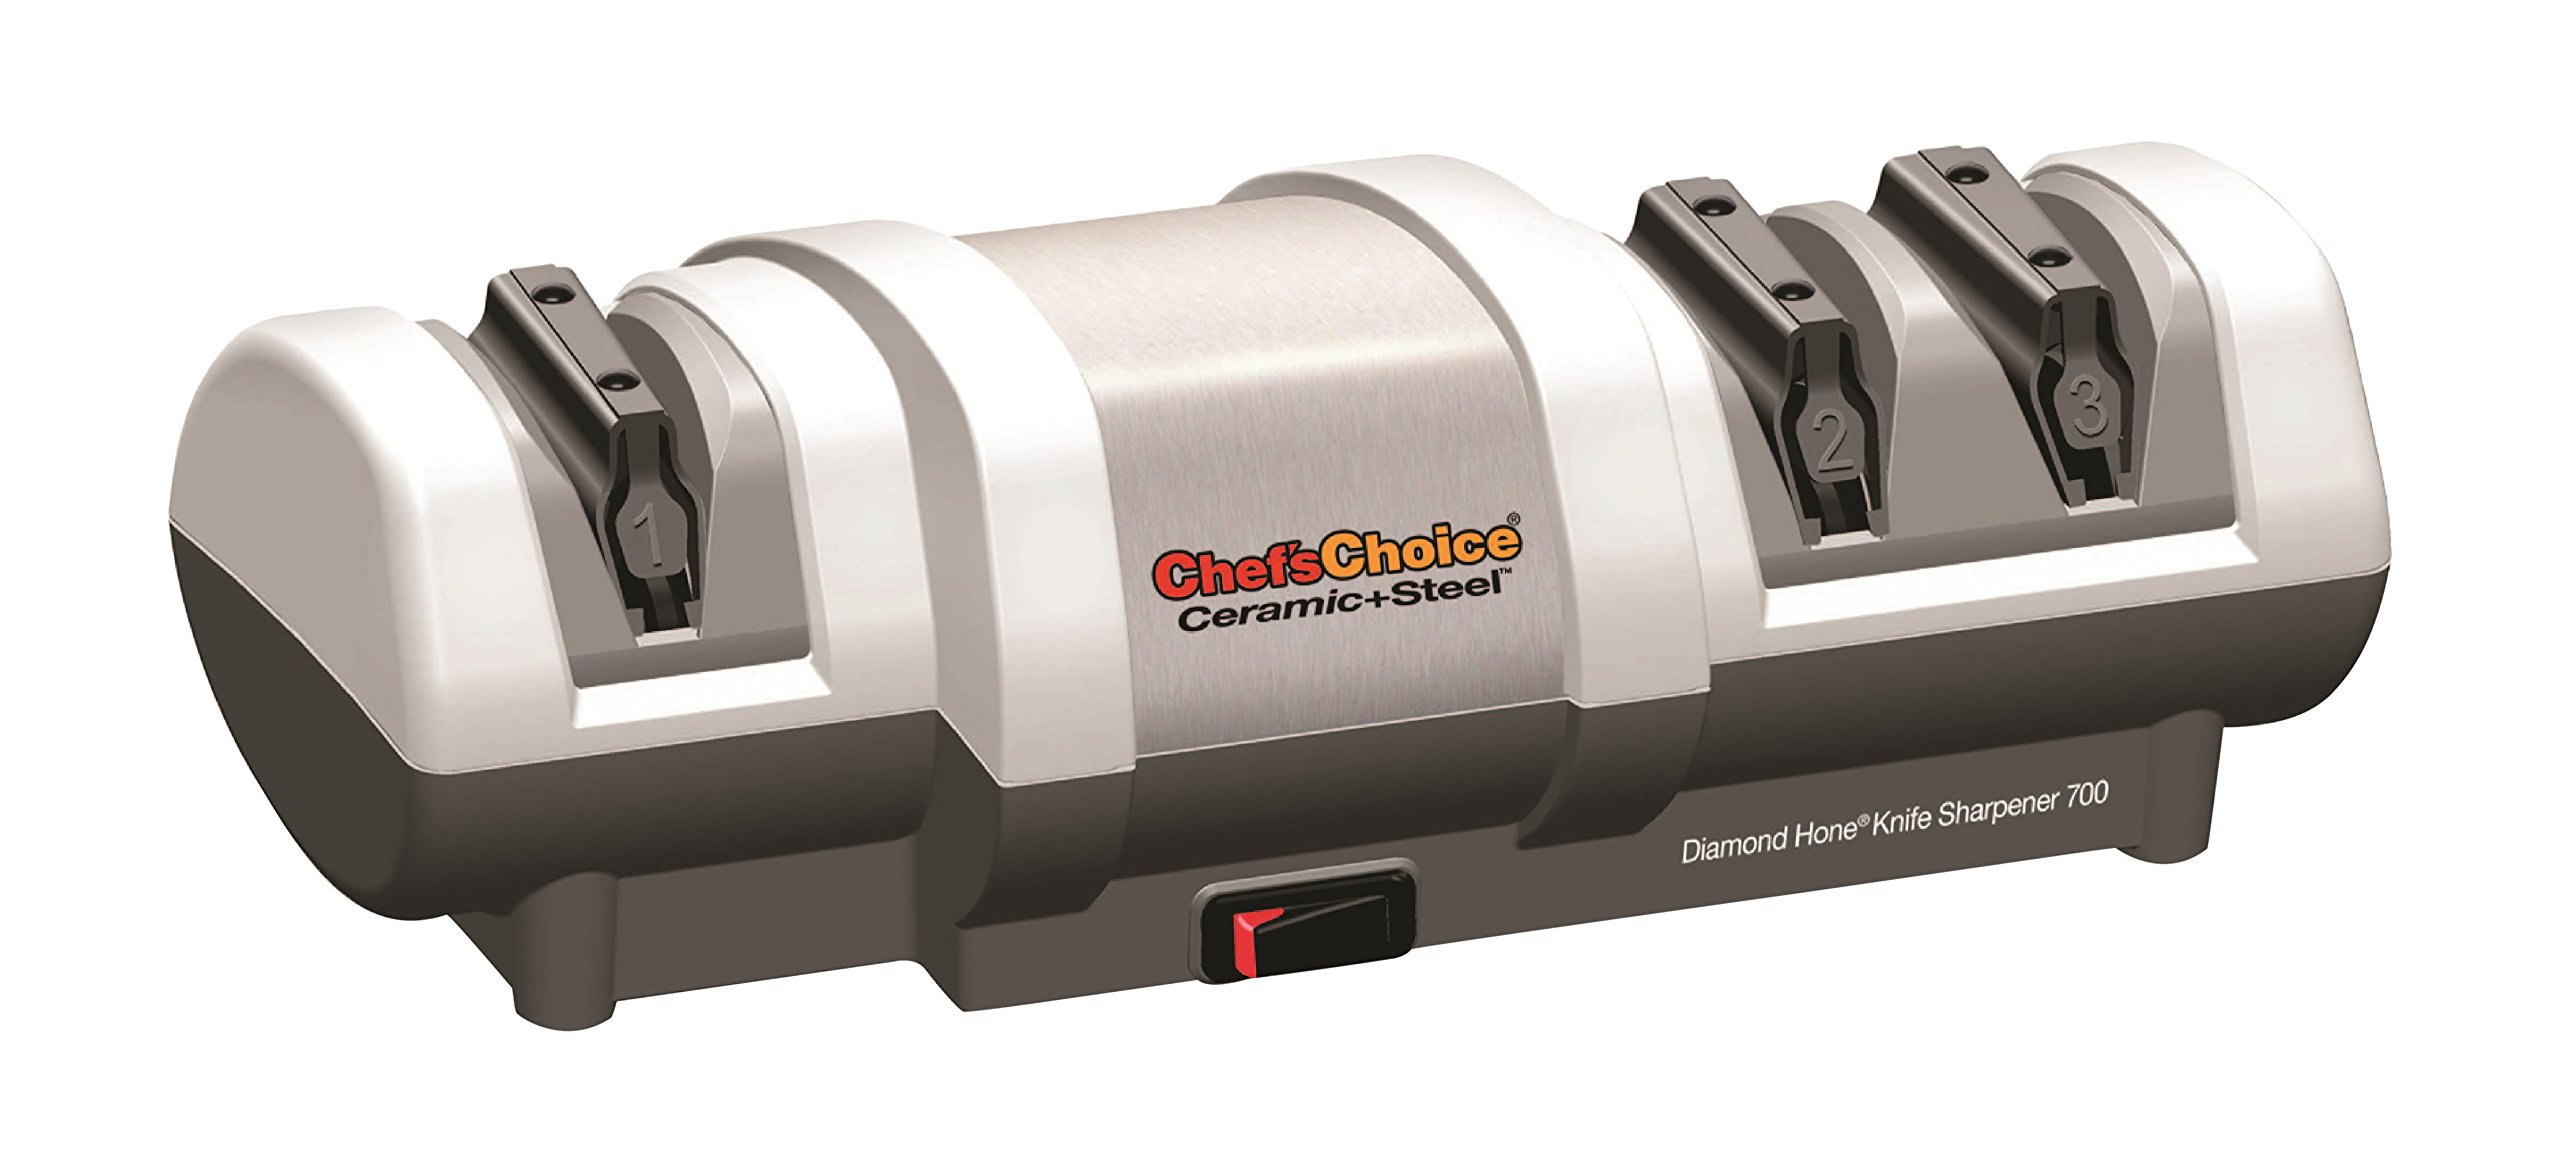 Chef's Choice 0170000 Chef's Choice700 Ceramic + Steel Diamond Hone Electric Knife Sharpener, White by Chef'sChoice